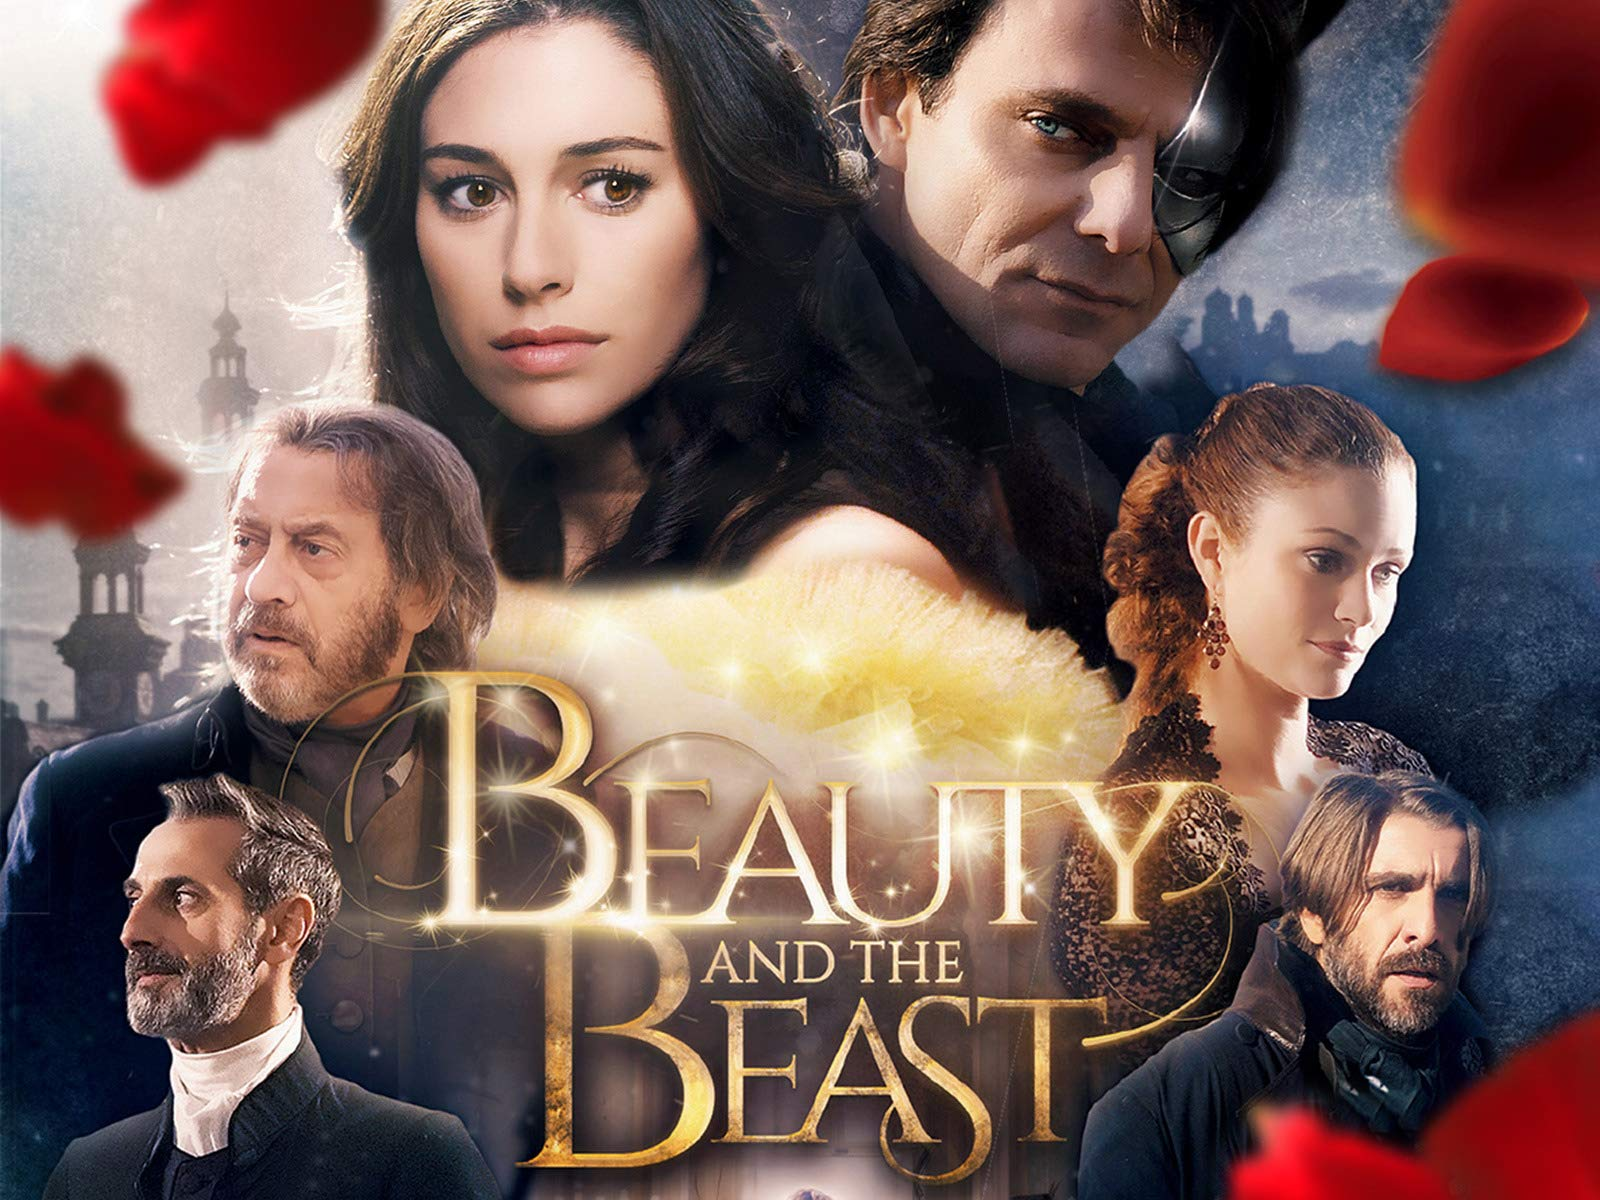 beauty and the beast stream online free